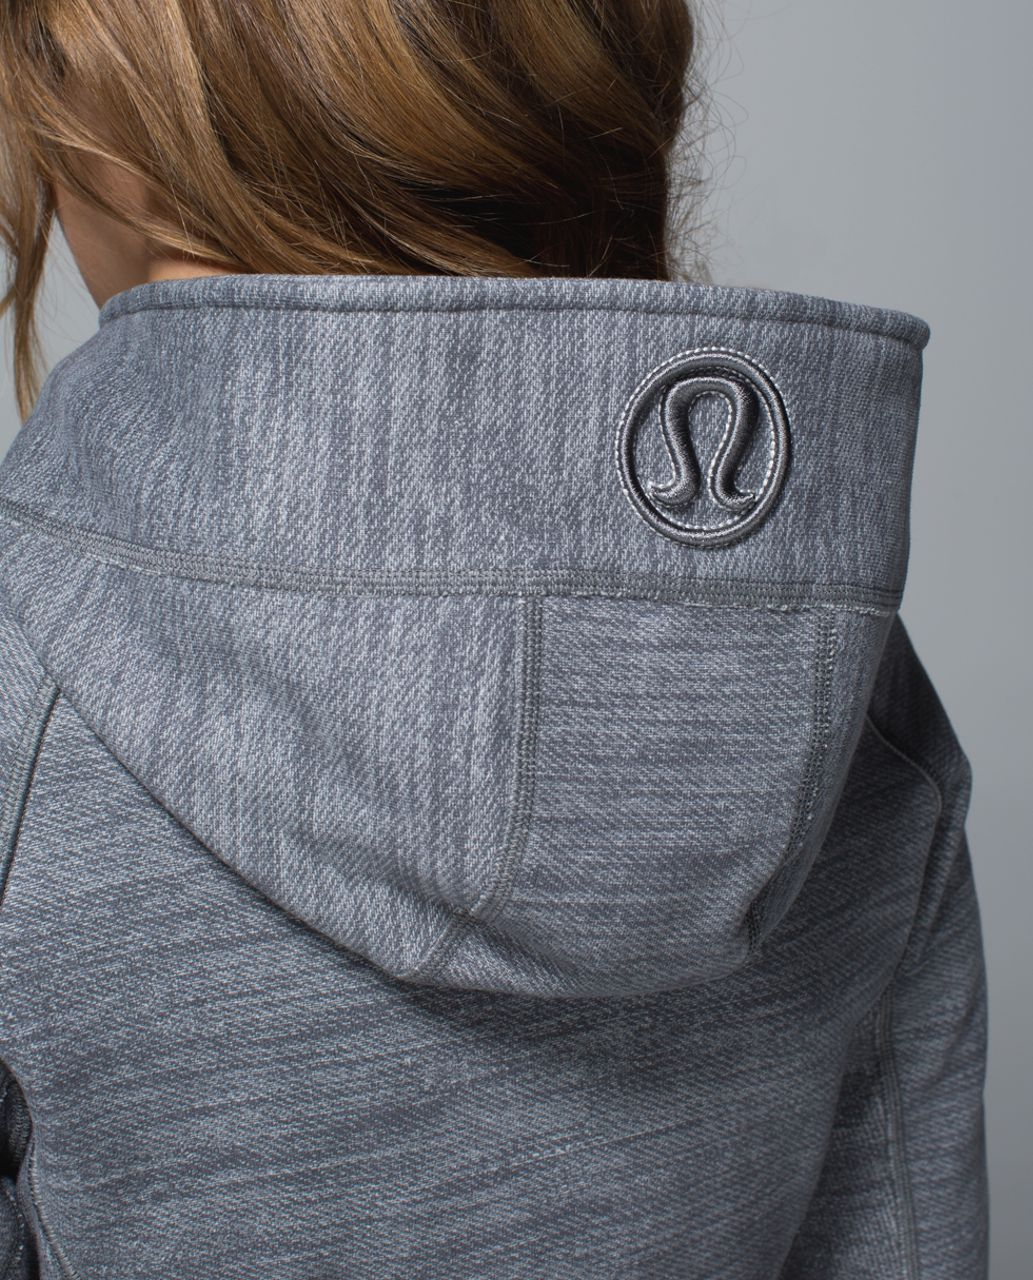 Lululemon Scuba Hoodie II - Commuter Denim Slate / Silver Spoon